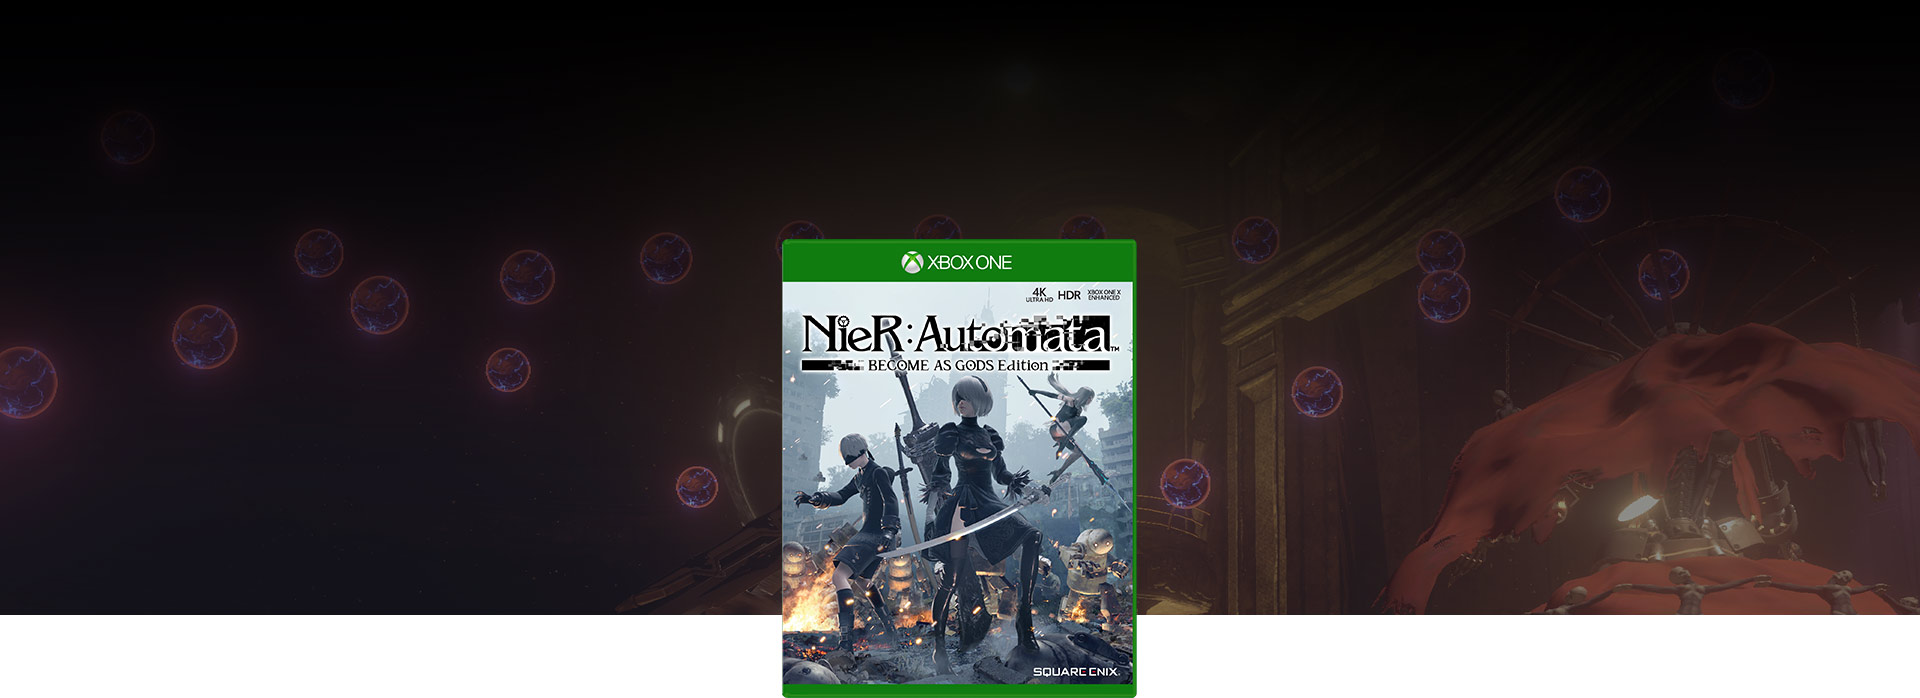 Nier Automata BECOME AS GODS Edition boxshot, Background of electric bubbles